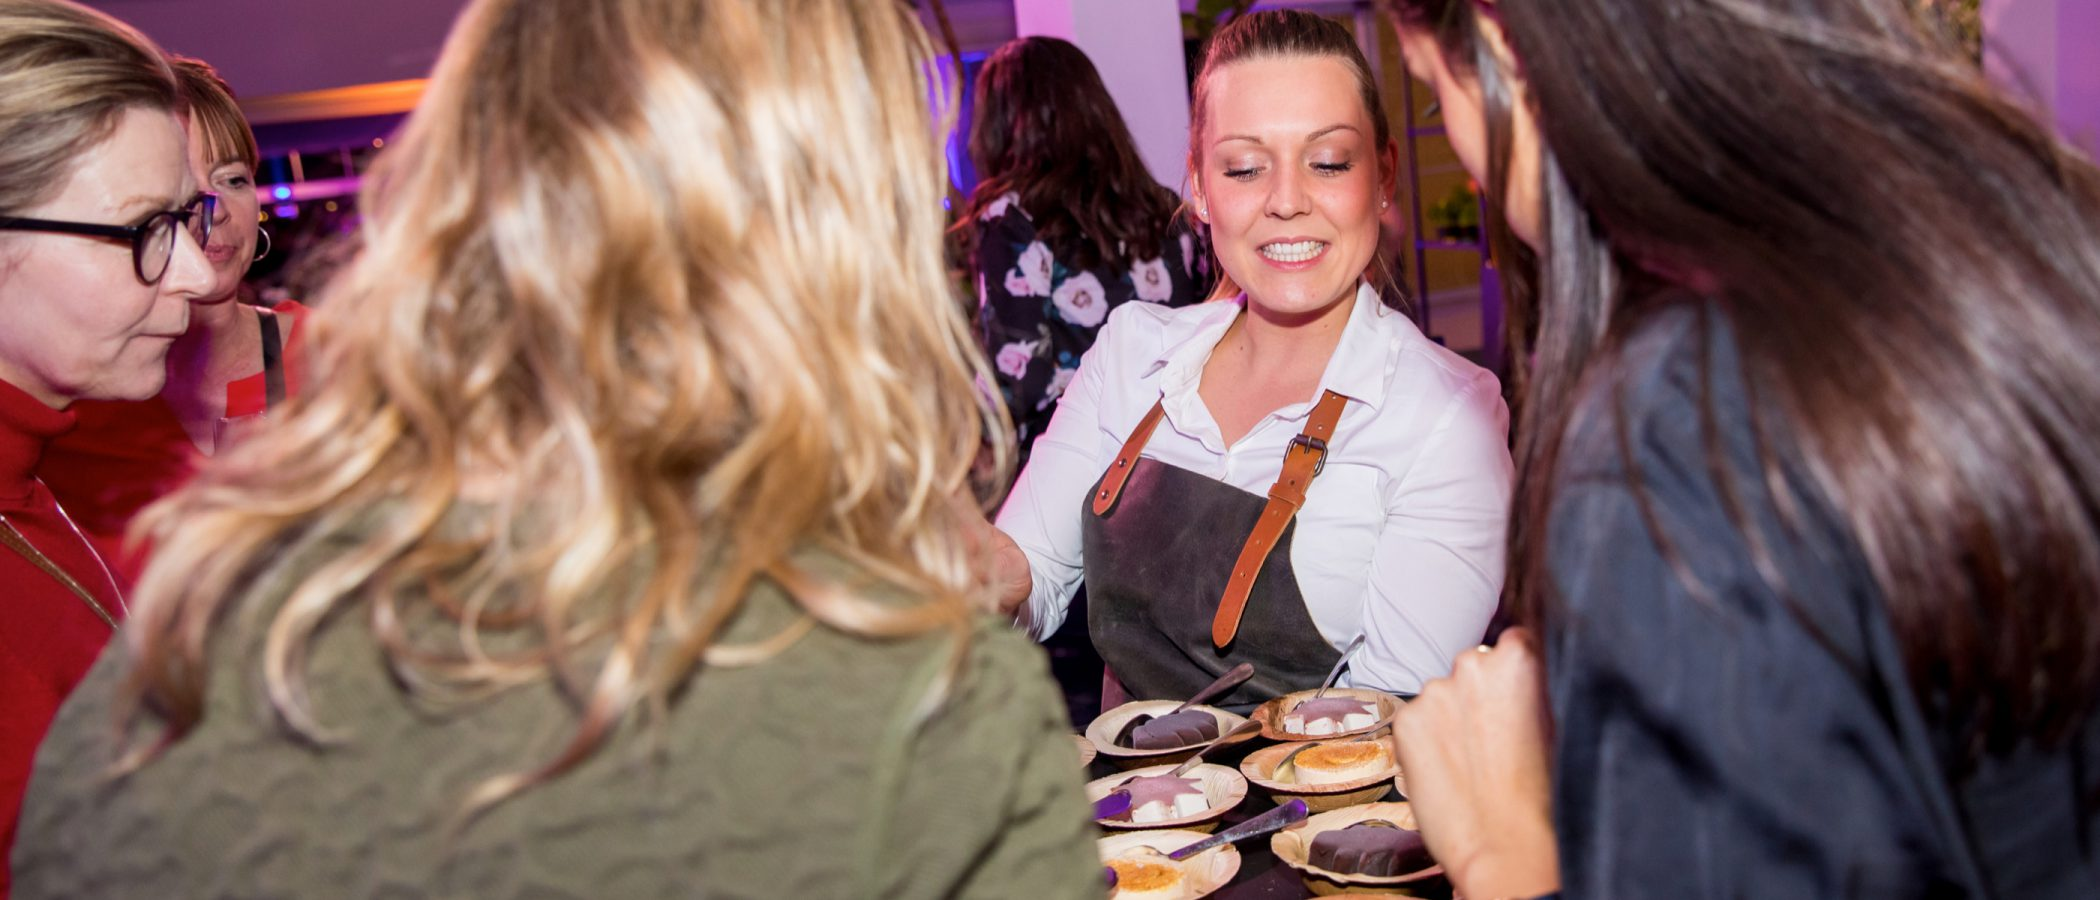 Evenement organiseren catering dessert